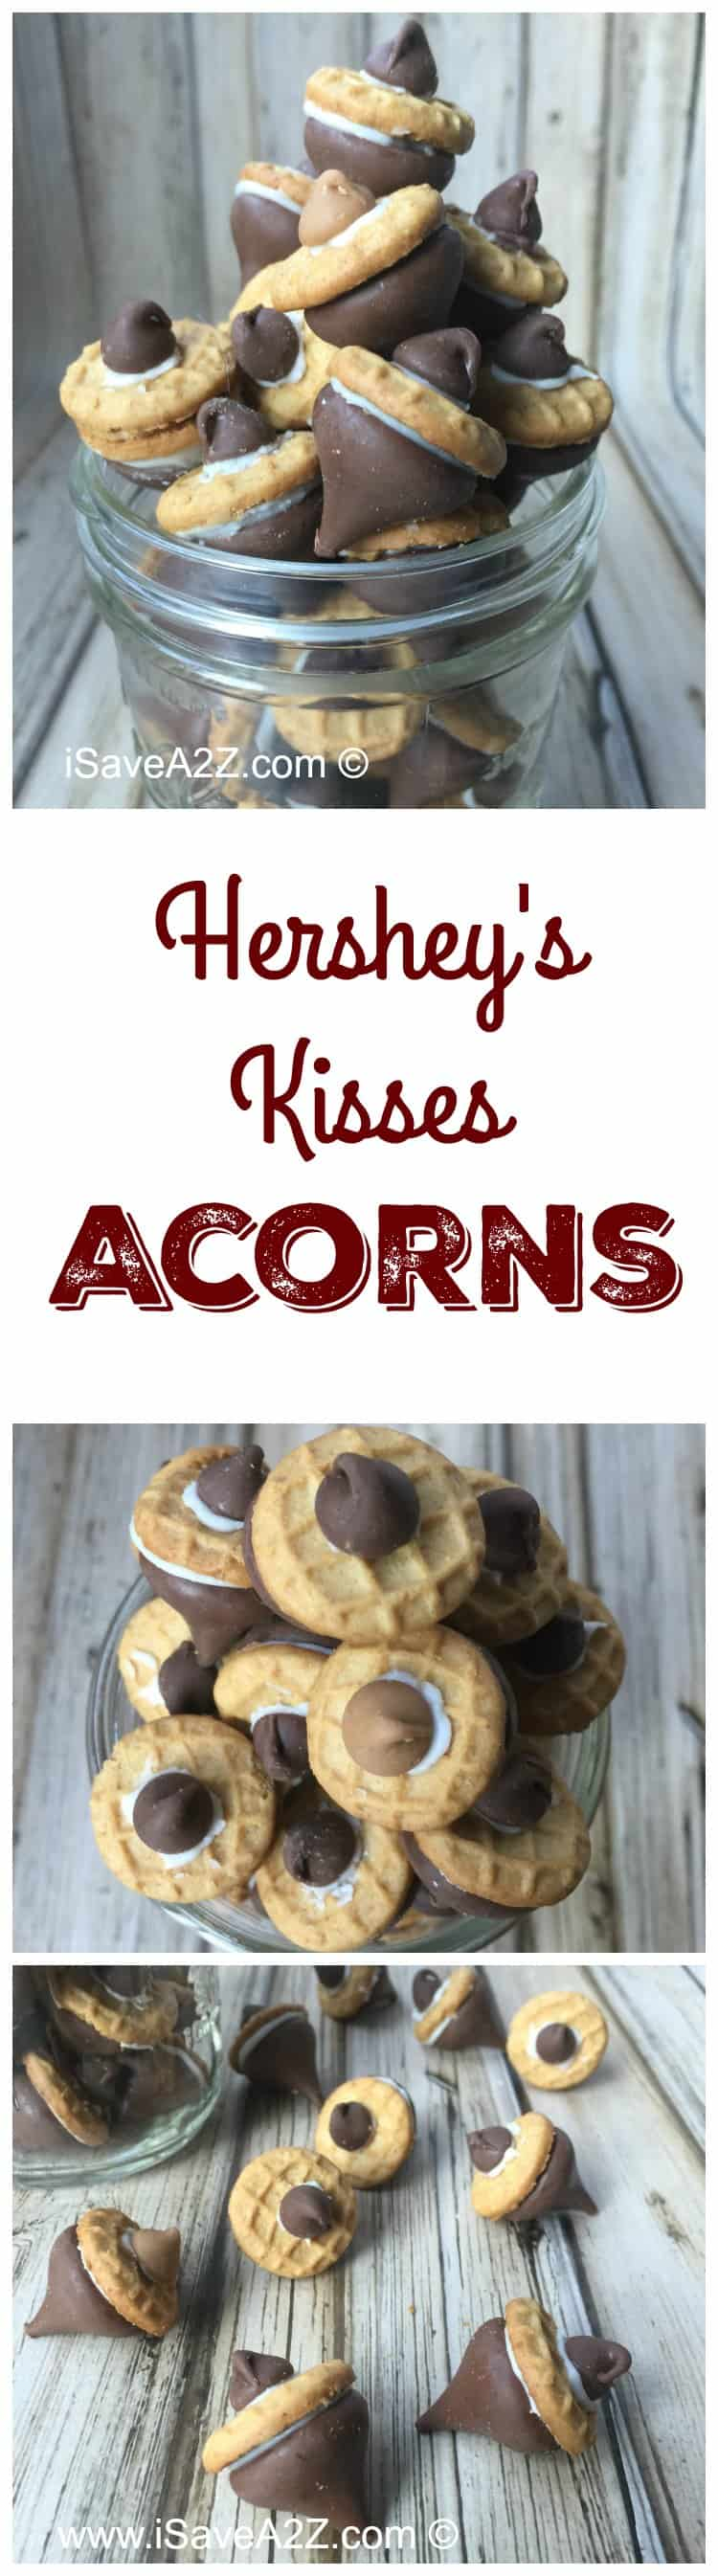 Cute Acorns made out of Hershey's Kisses